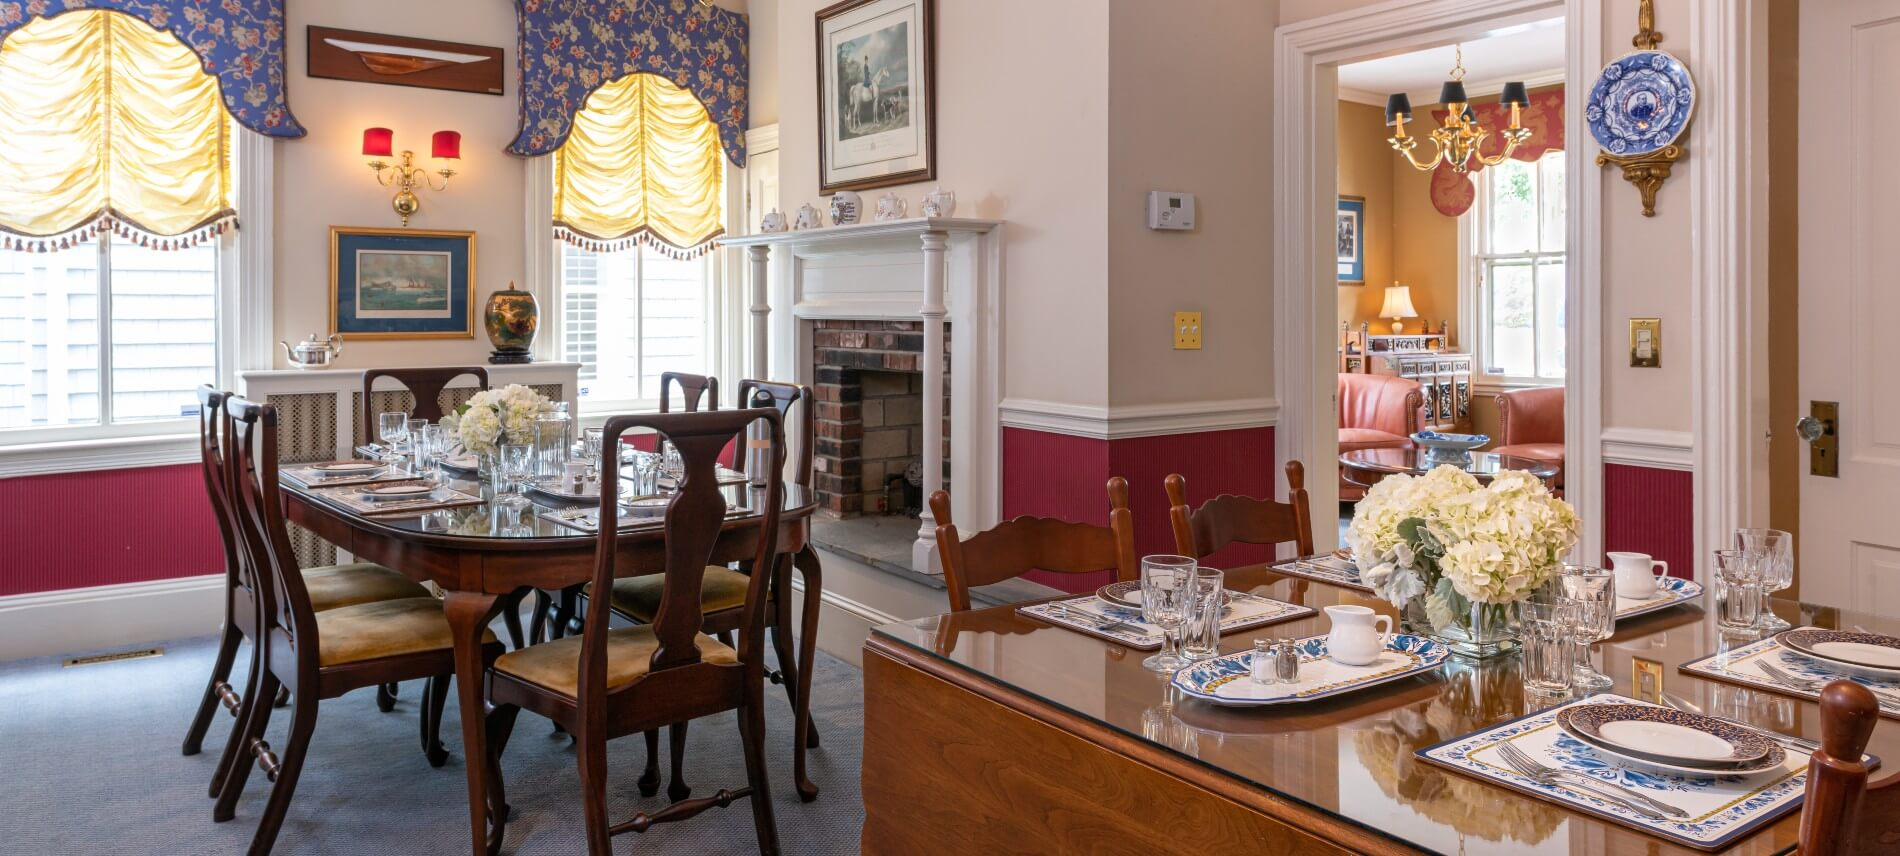 dining room, tables and chairs